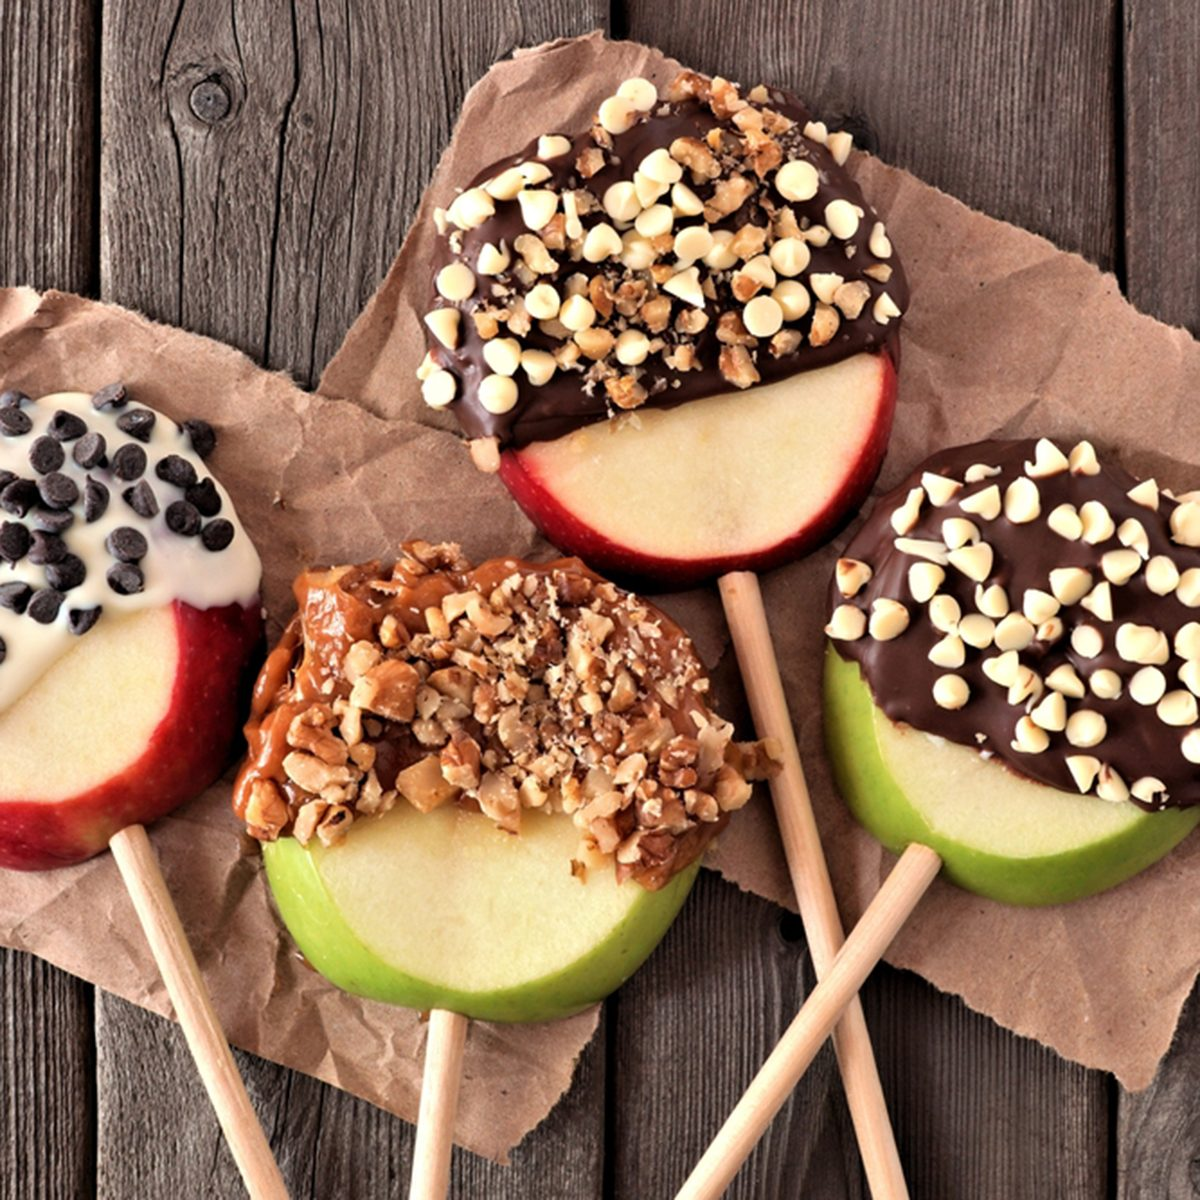 Mixed chocolate and caramel dipped apples rounds